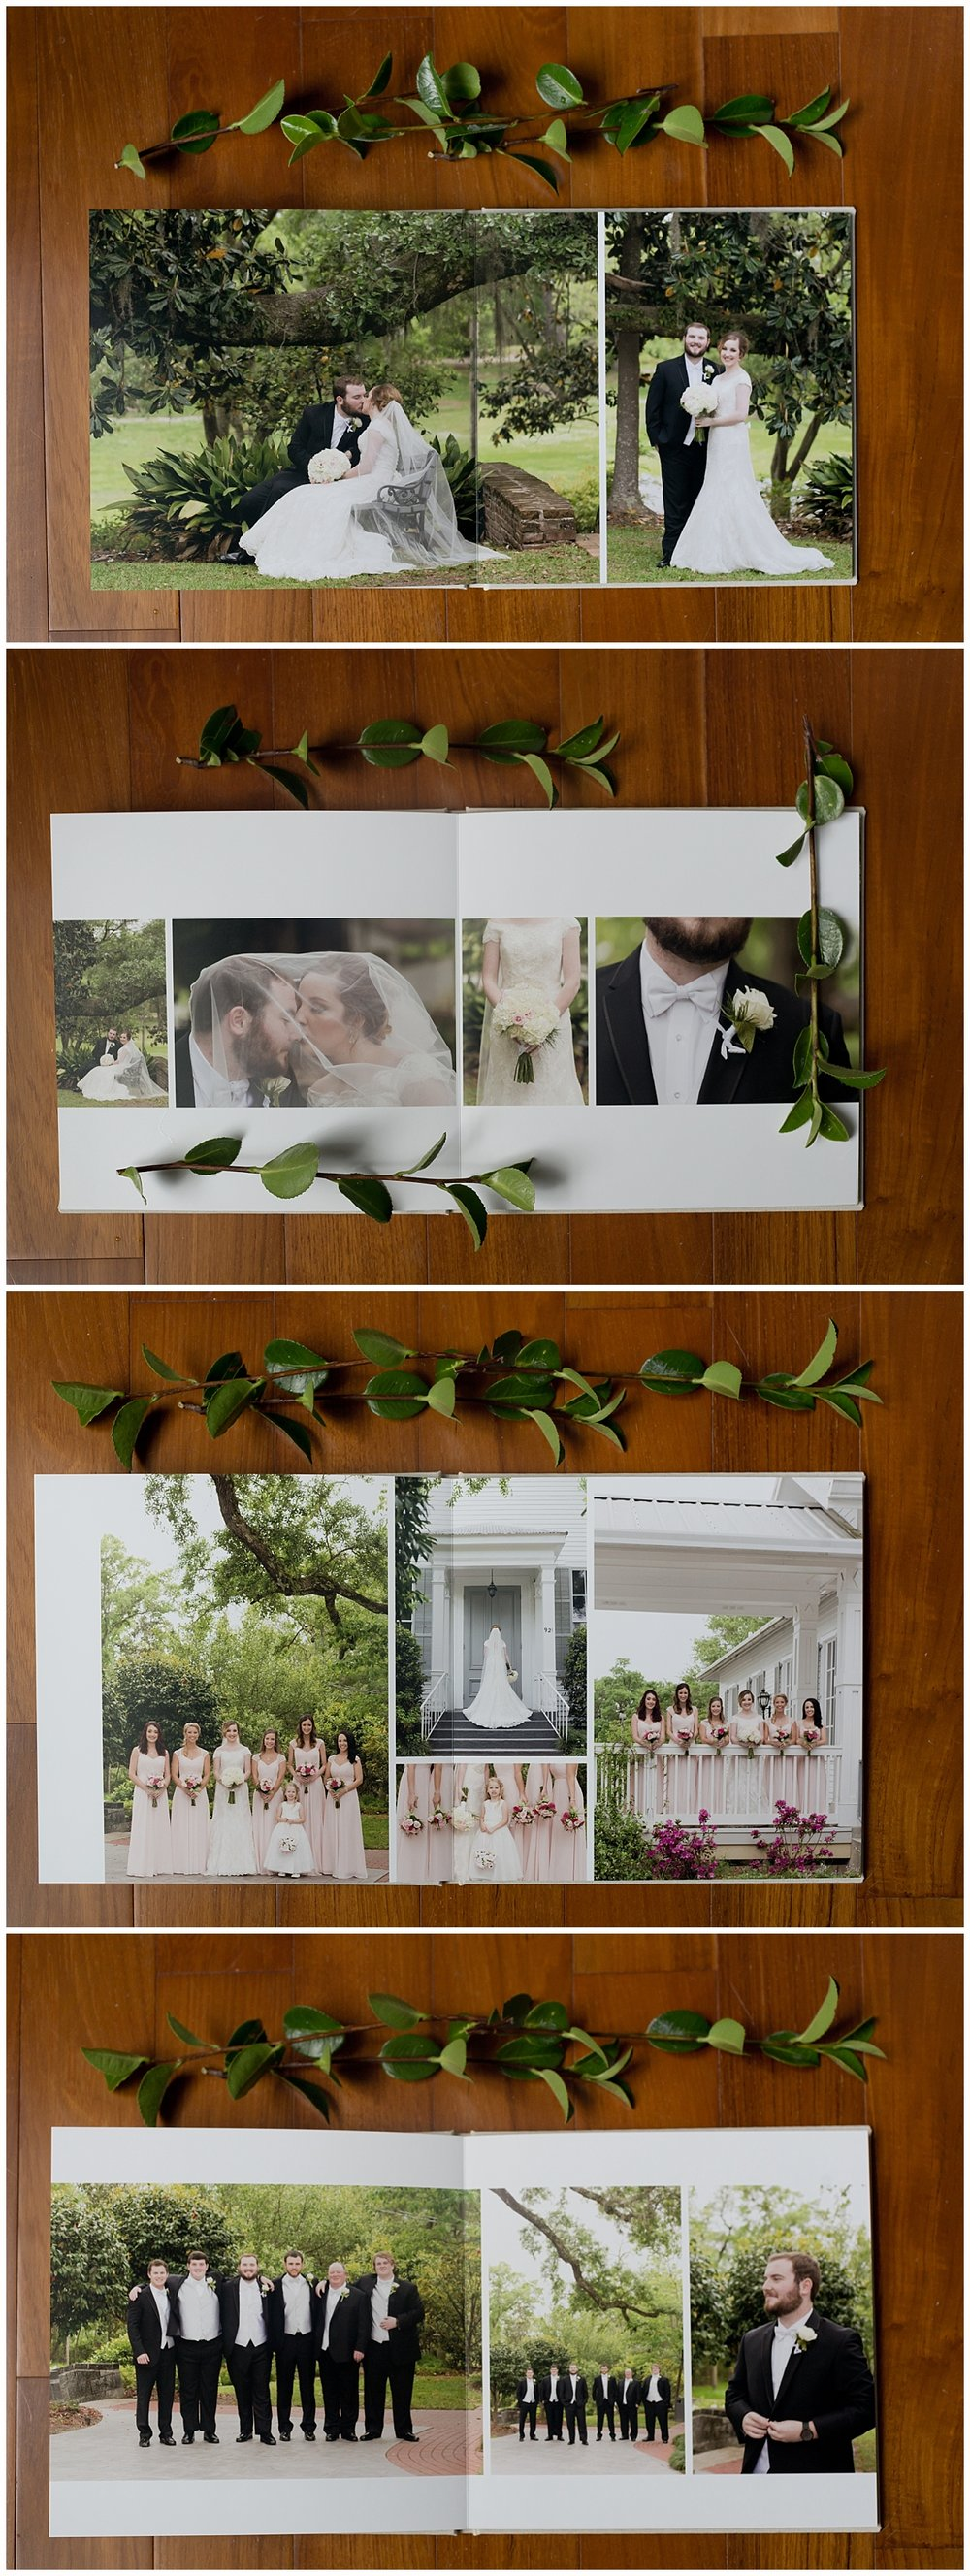 wedding portraits in wedding album - Ocean Springs wedding photographer